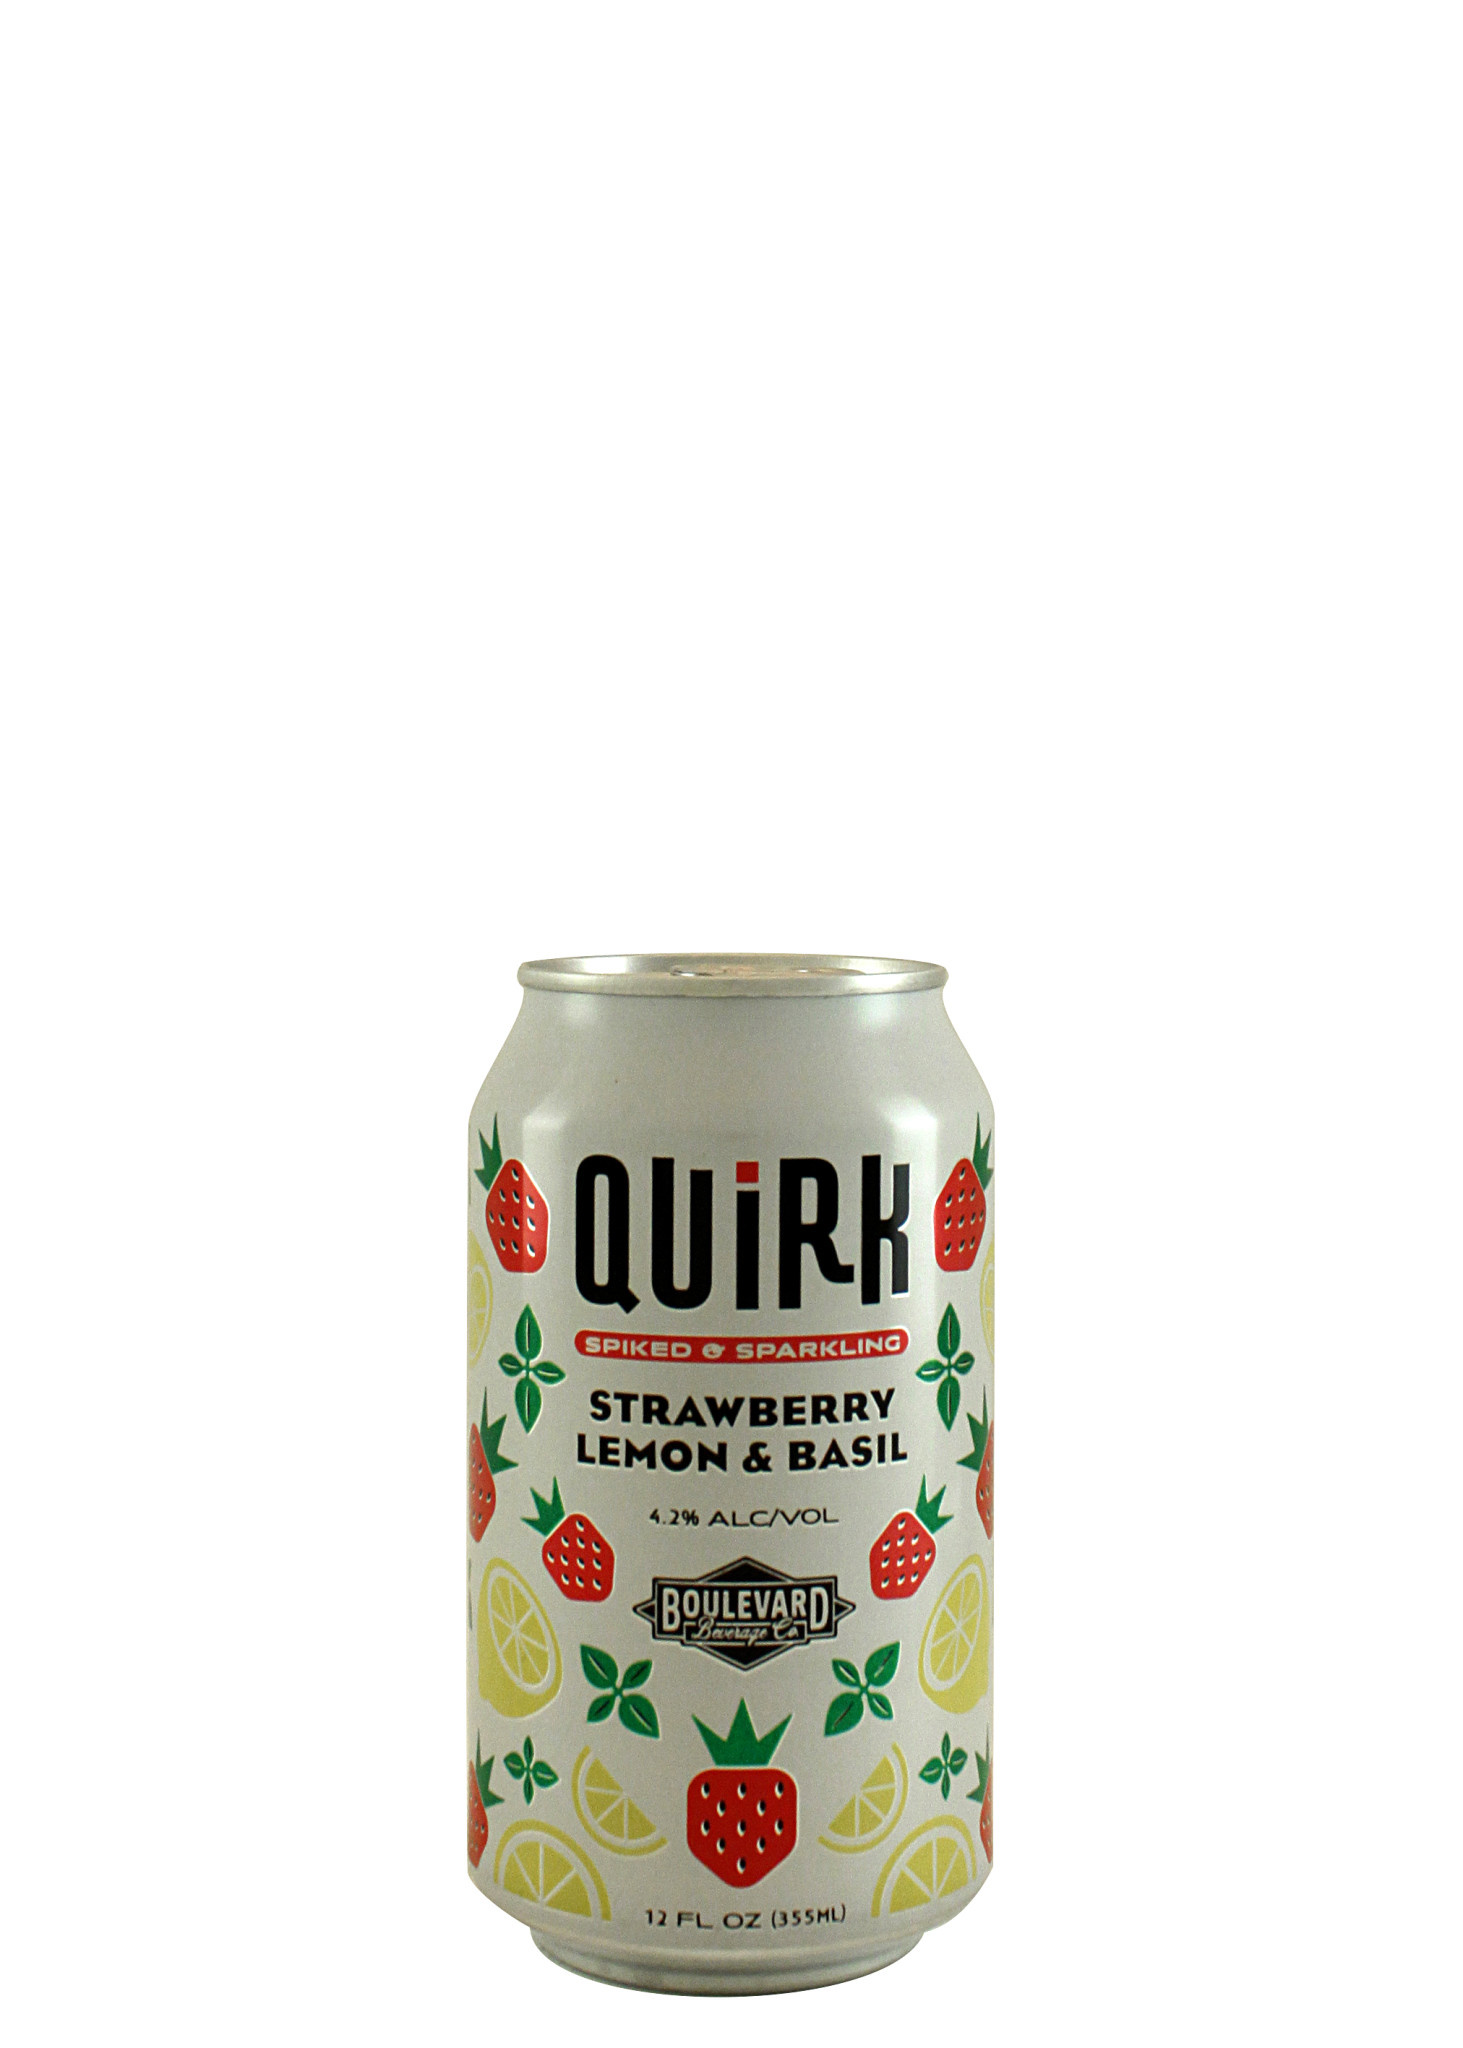 Boulevard Beverage Quirk Strawberry Lemon & Basil Spiked & Sparkling 12oz. Can